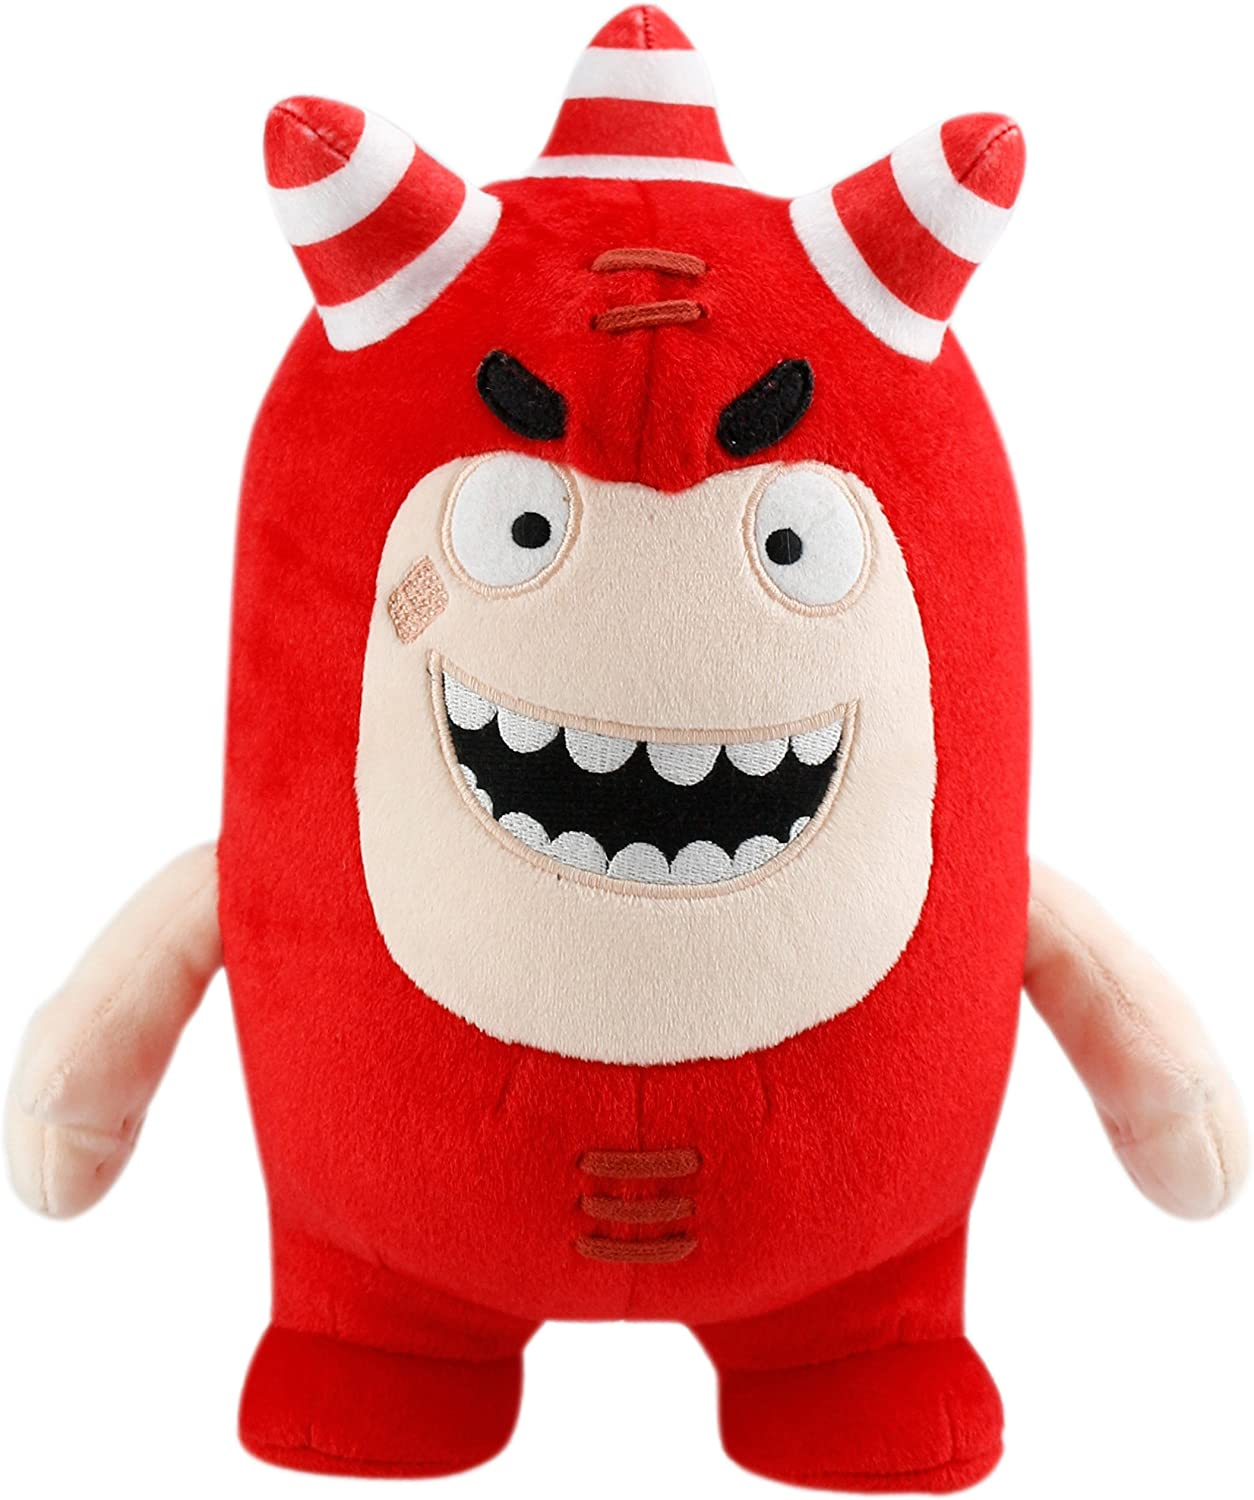 Oddbods 25cm Fuse Super Sounds Soft Plush Toy